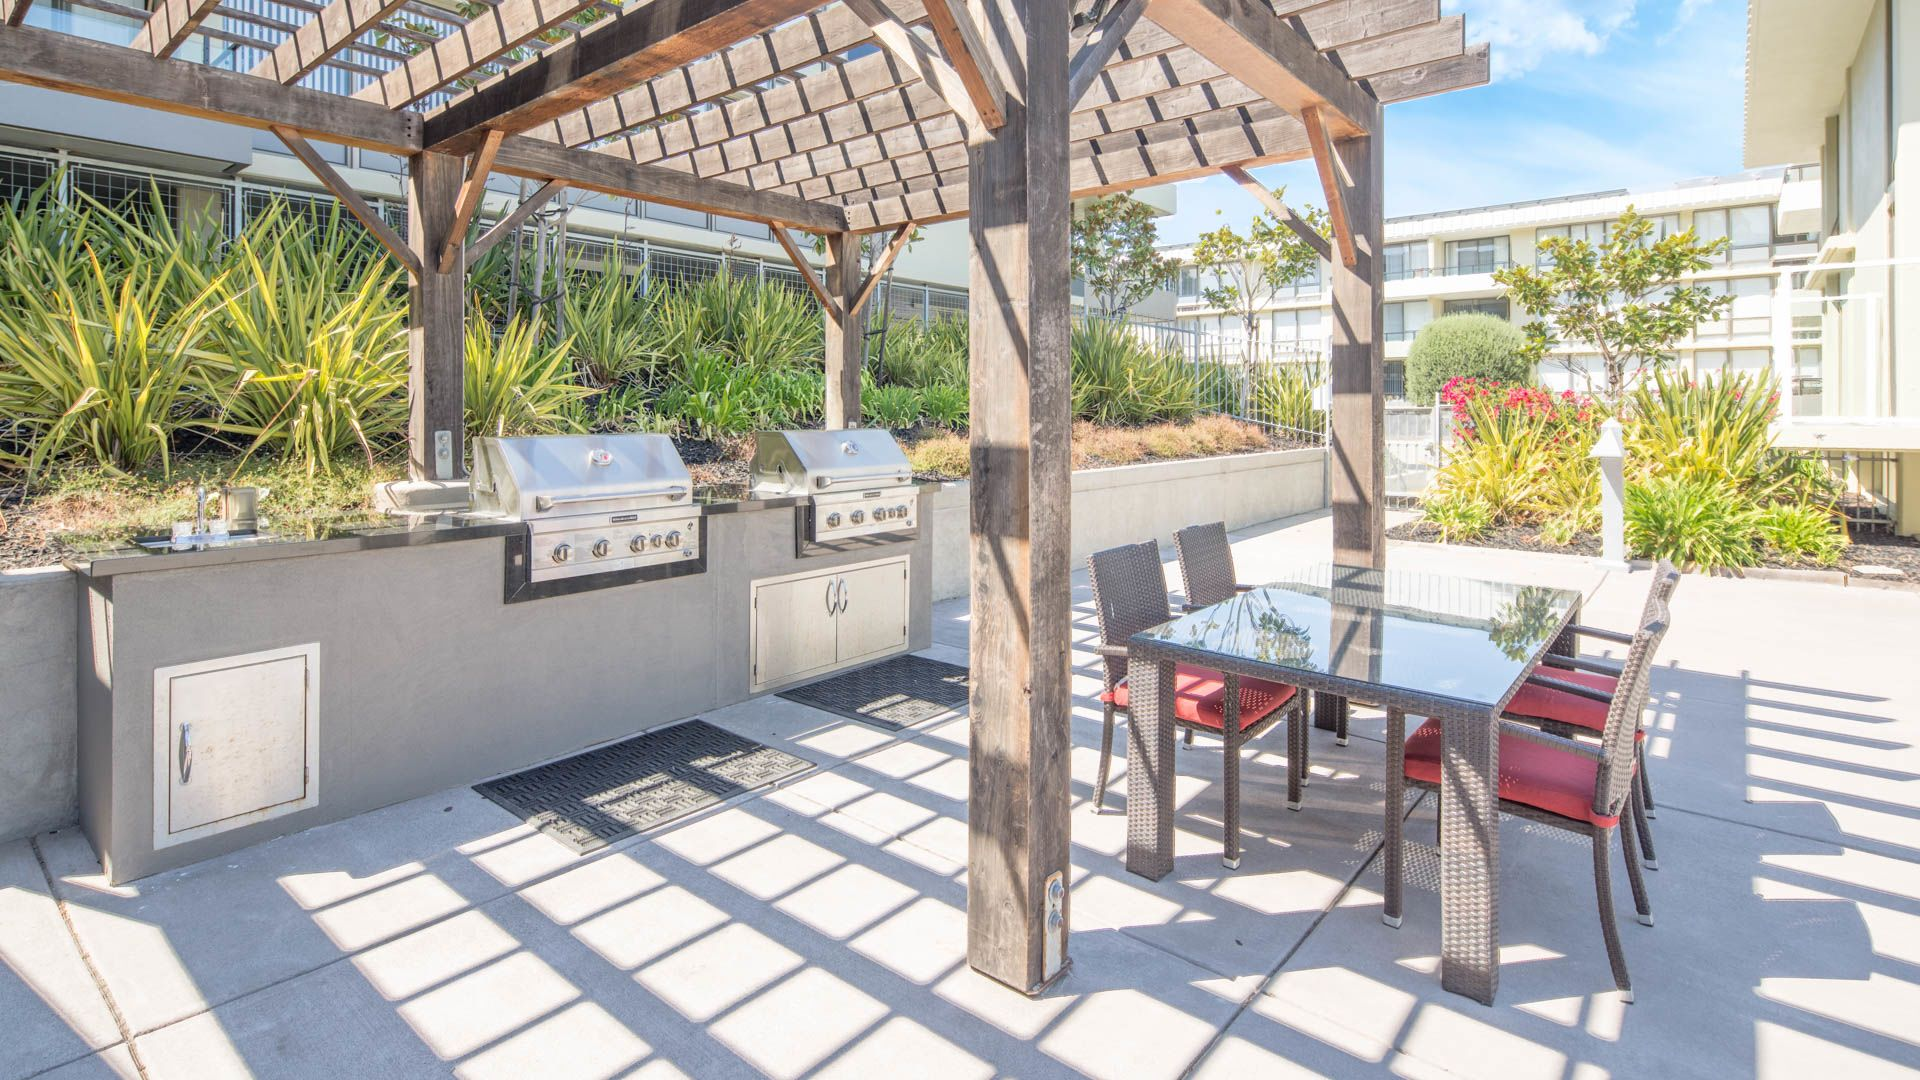 Skyline Terrace Apartments - Grilling Area